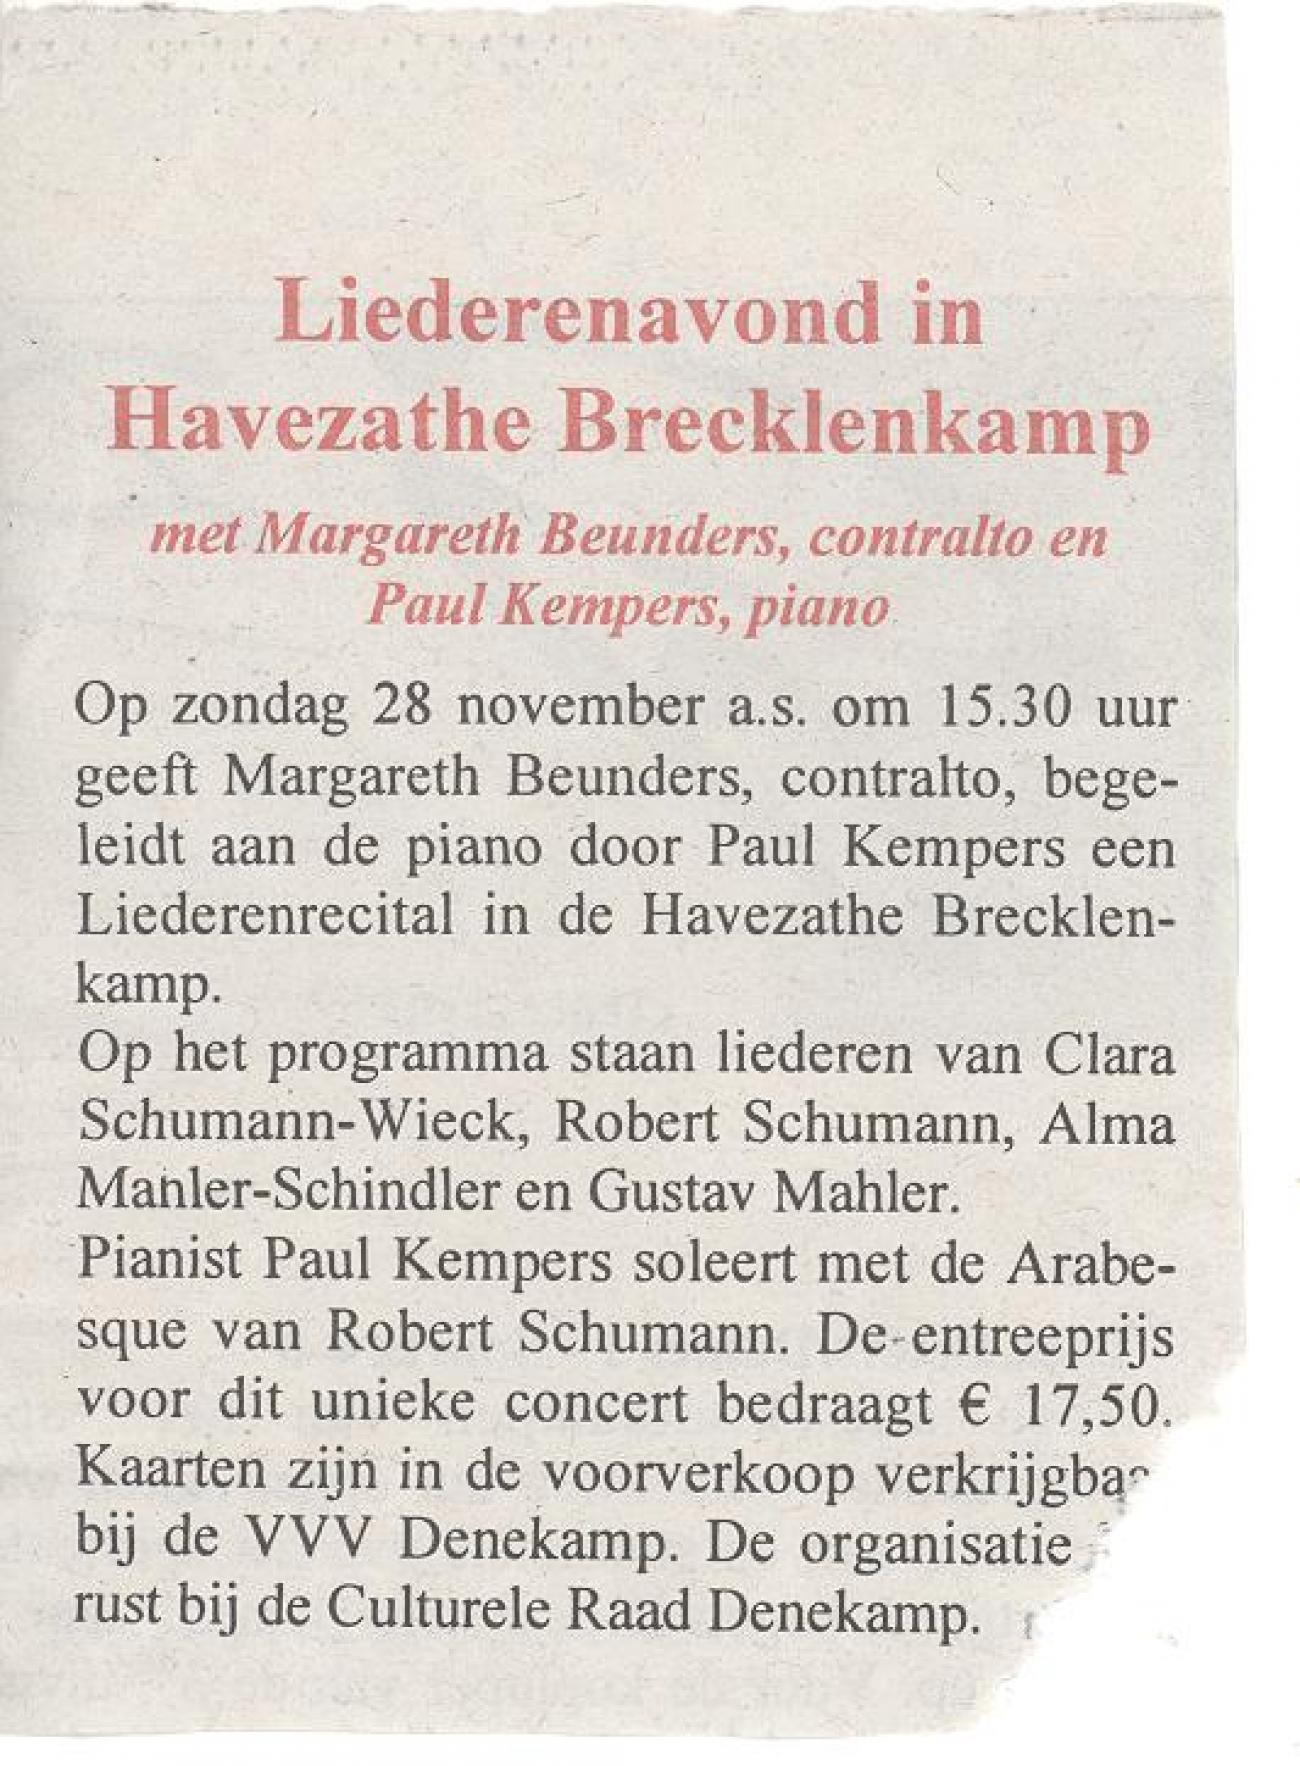 Liederenavond in Havezathe Brecklenkamp